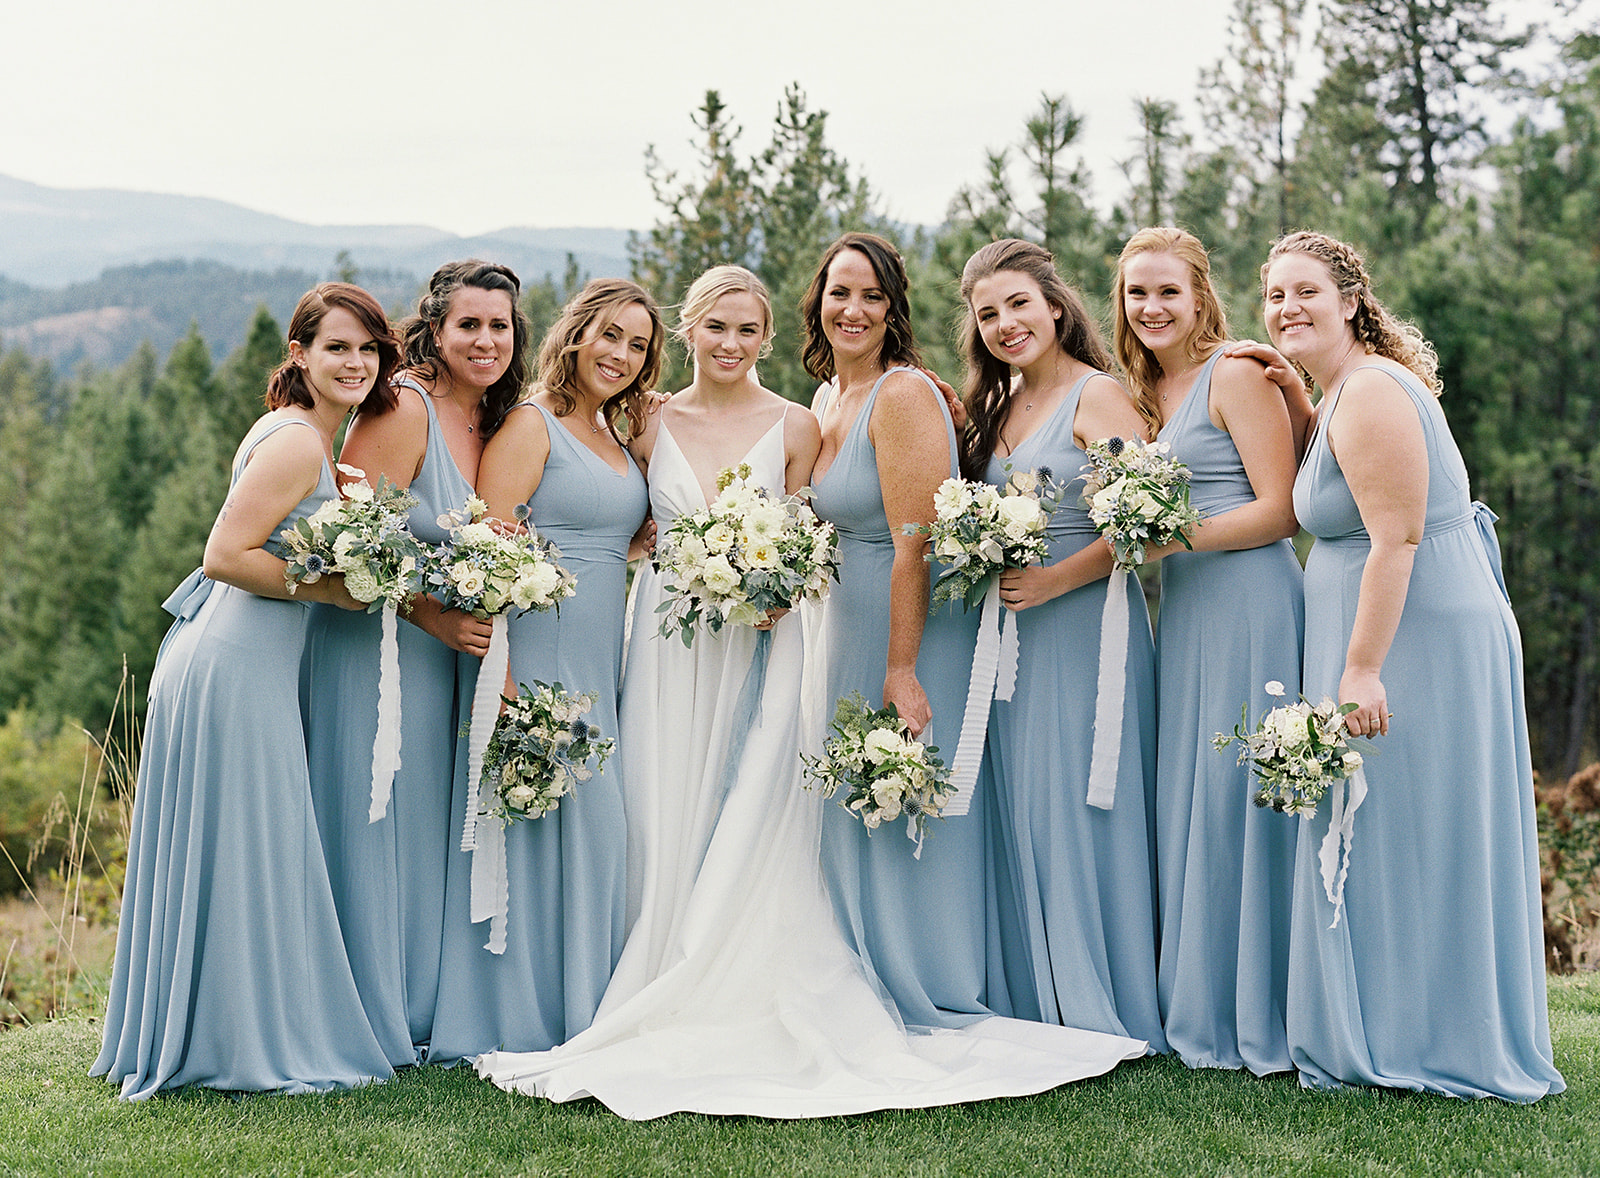 bride surrounded by bridesmaids wearing light blue dresses